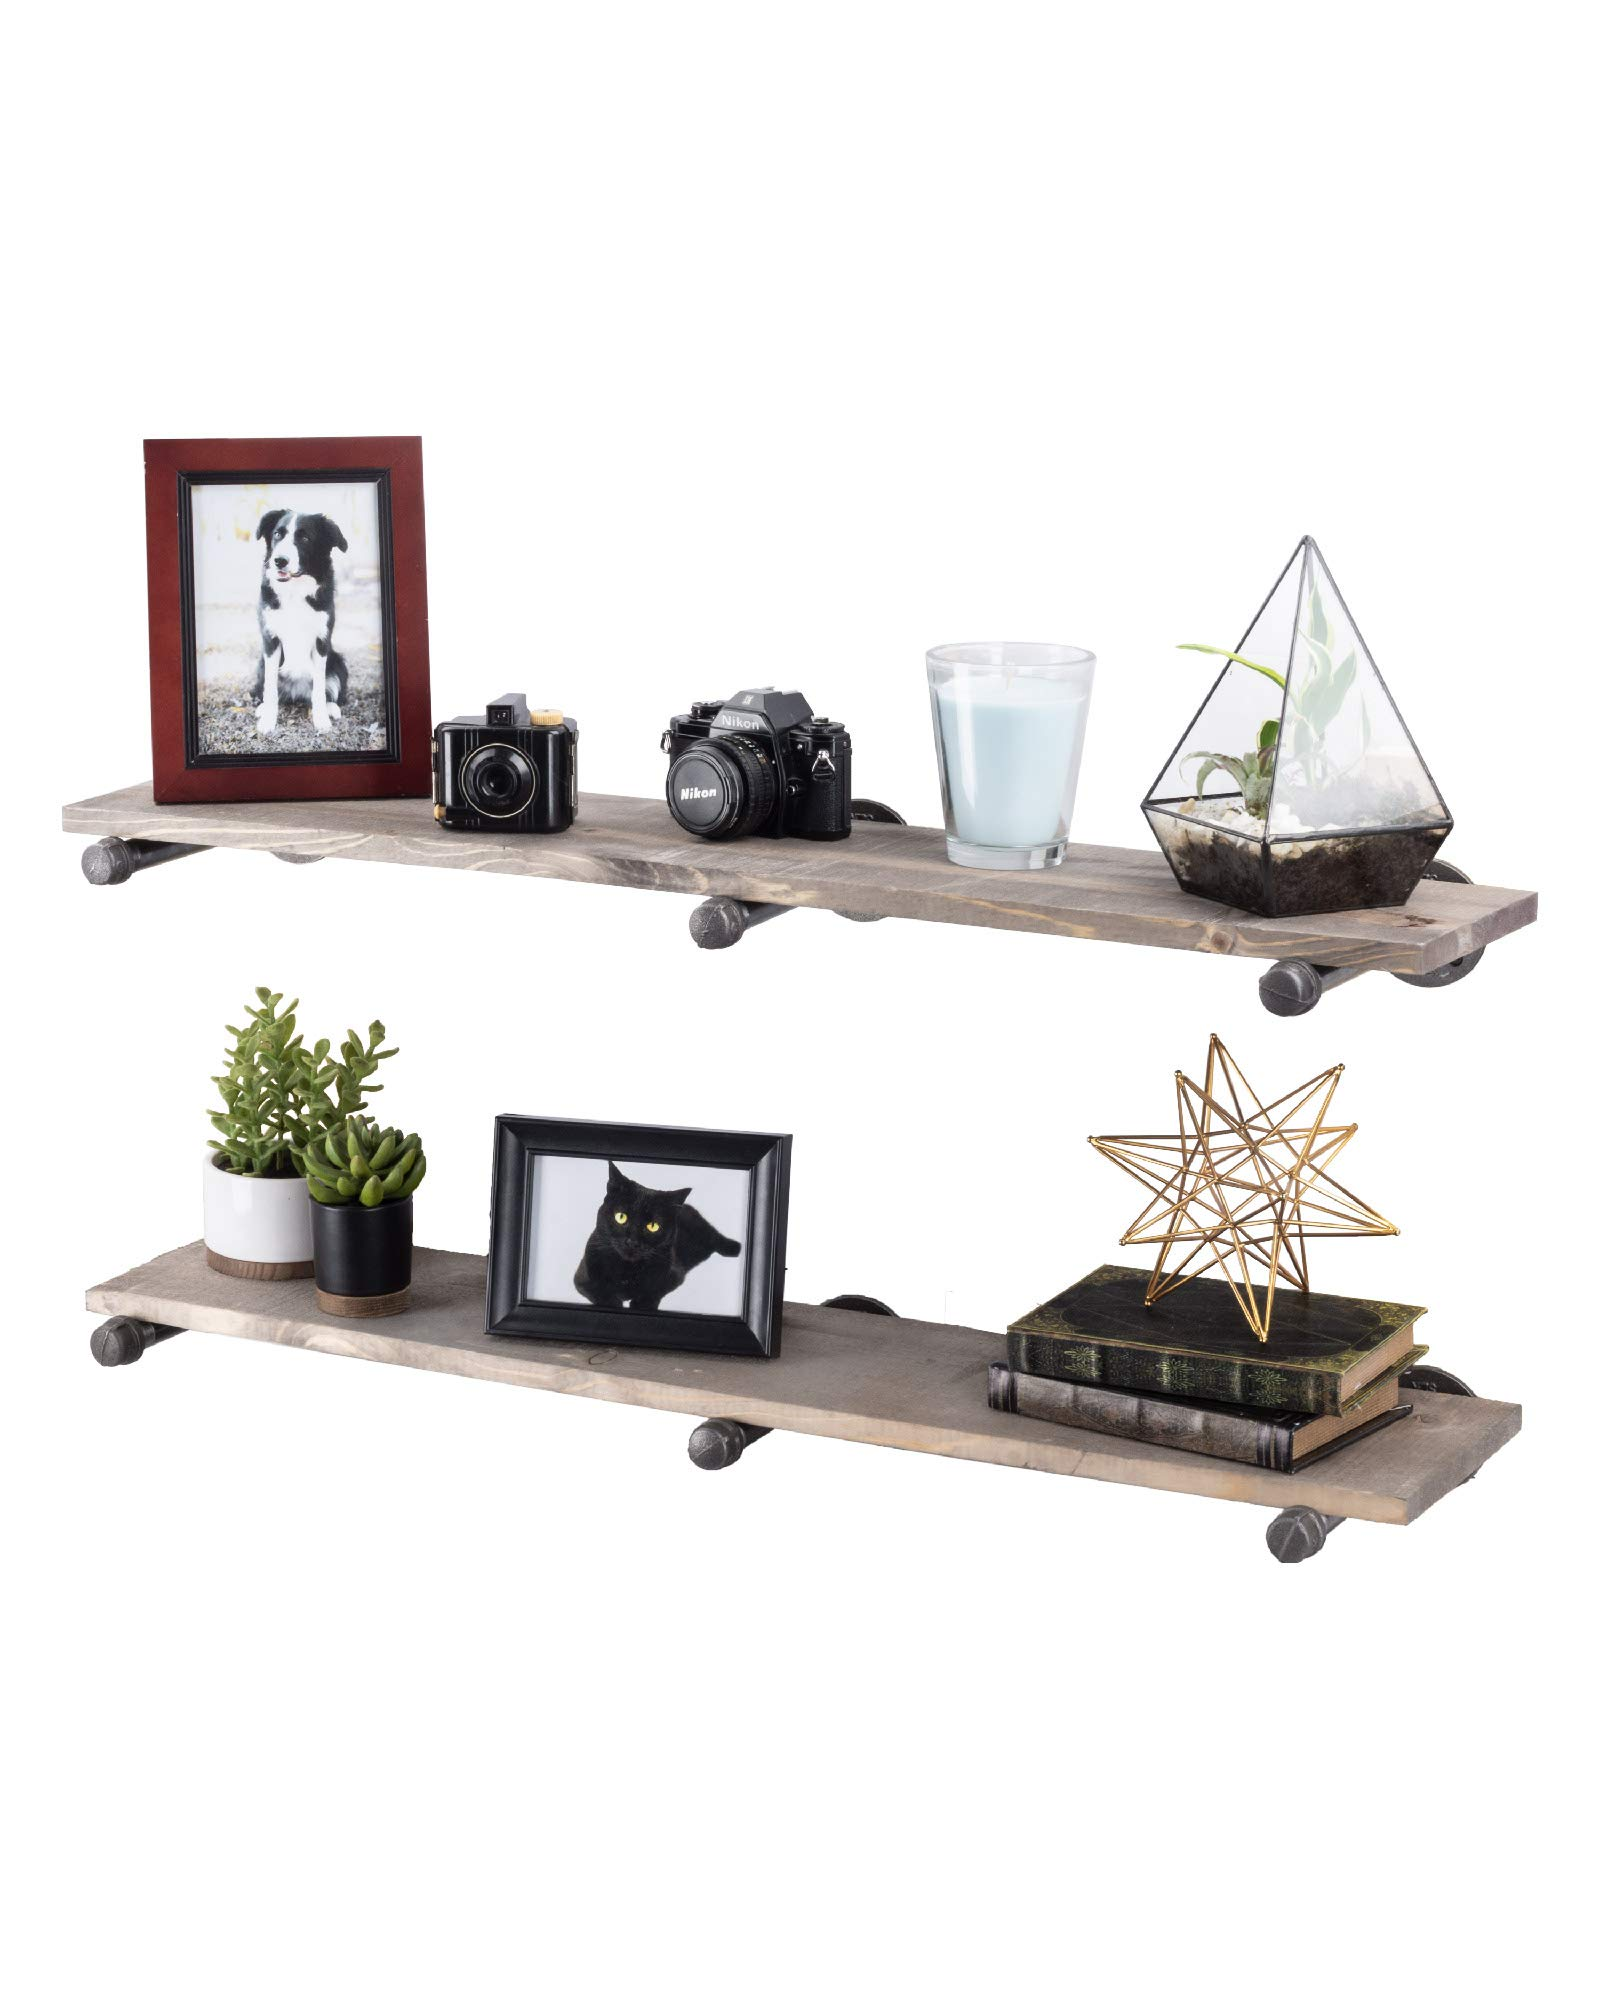 Rustic Industrial Pipe Bracket Floating Shelves by Pipe Decor, Distressed Aged Wood Paired with Iron Pipes, Wall Mounted Hanging Shelf, Reclaimed Barn Wood Inspired, 36 Inch Grey 2 Pack 6 Brackets